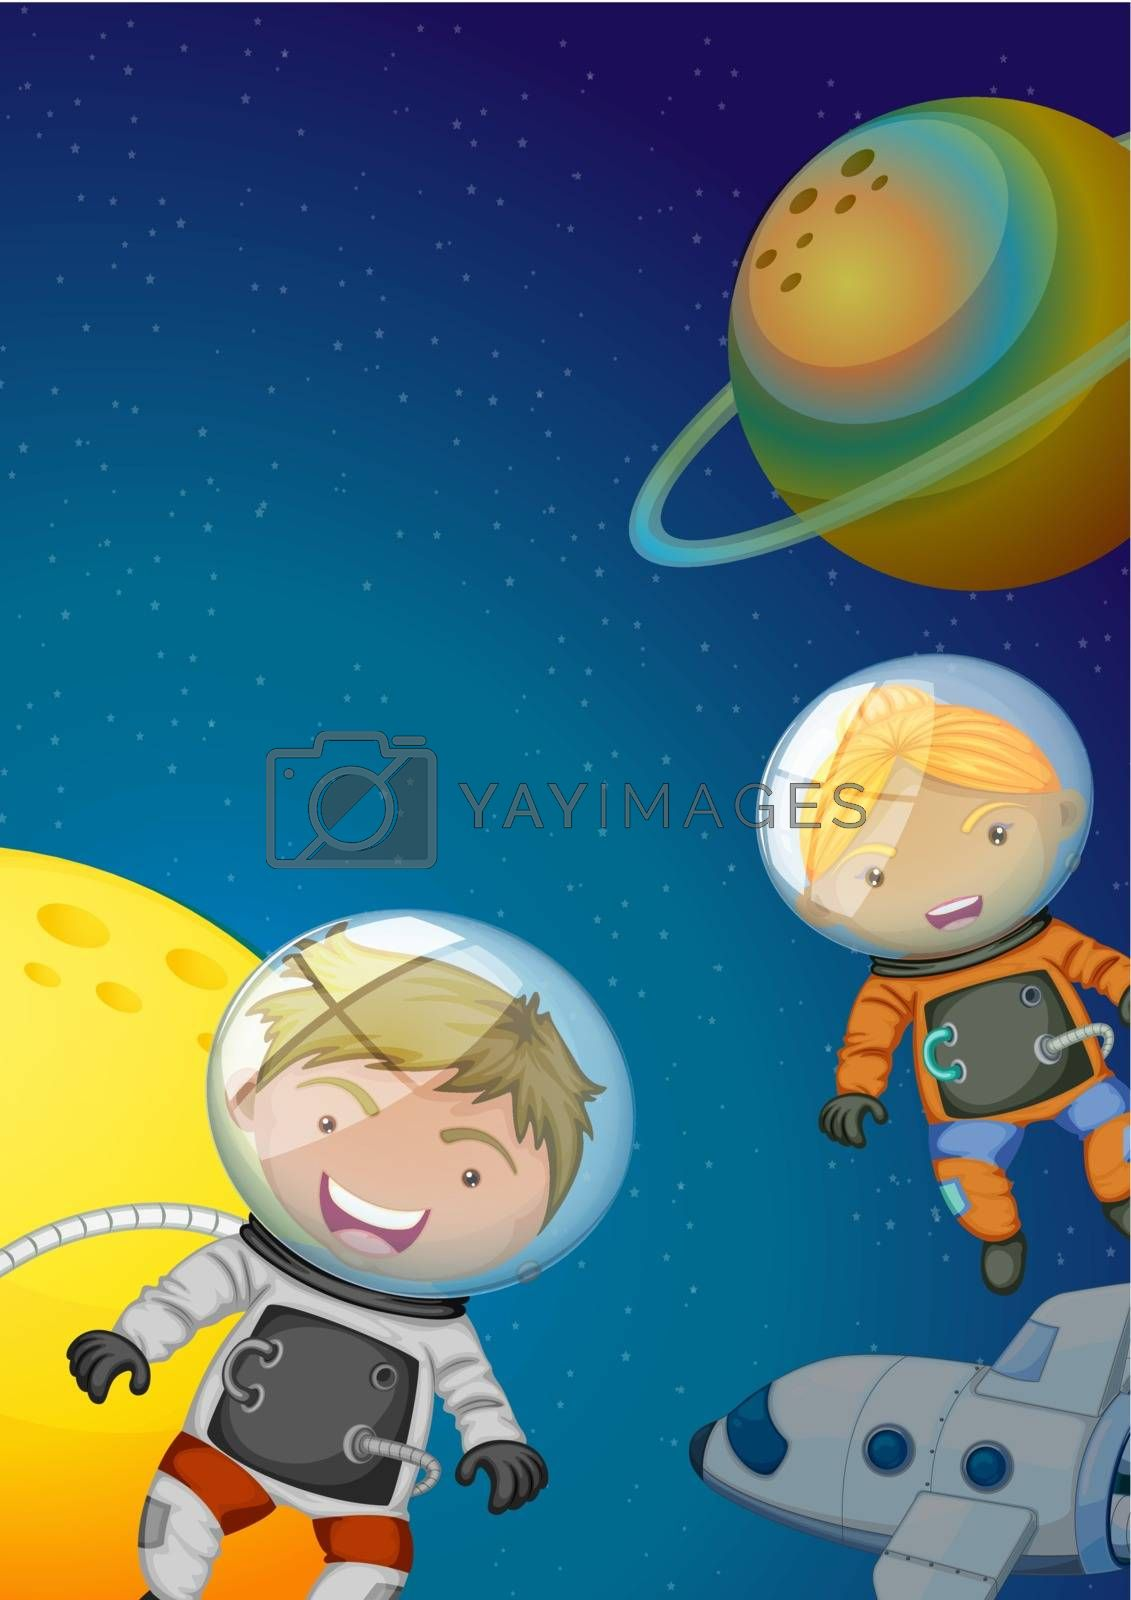 Illustration of the astronauts exploring the galaxy